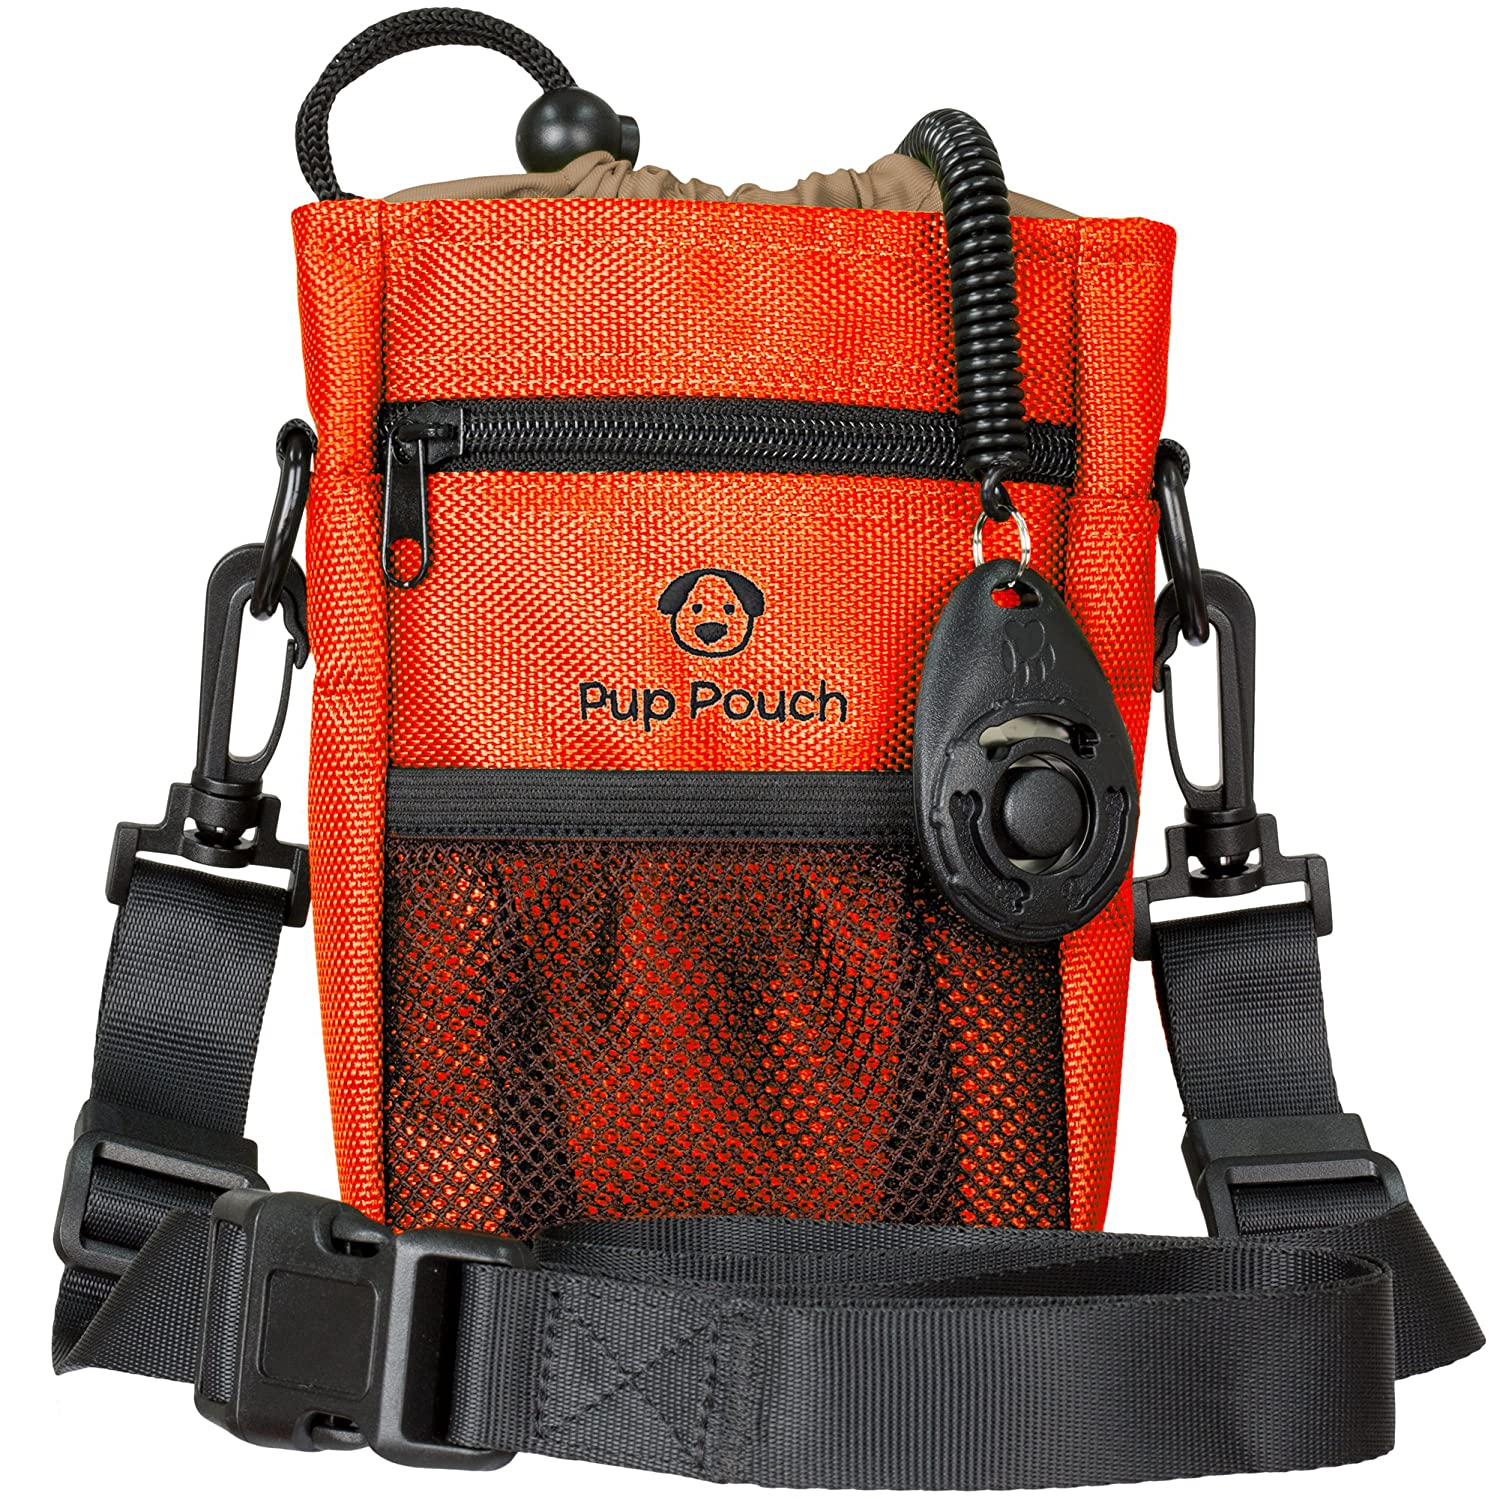 Dog Clicker Treat Walking Training Pouch Bag Bonus Clicker Trainer - Built-in Double Poop Bag Dispenser, Drawstring Closure - Carries Balls, Toys, Treats - 3 Ways to Wear - Burnt Orange Bloomberry Supply